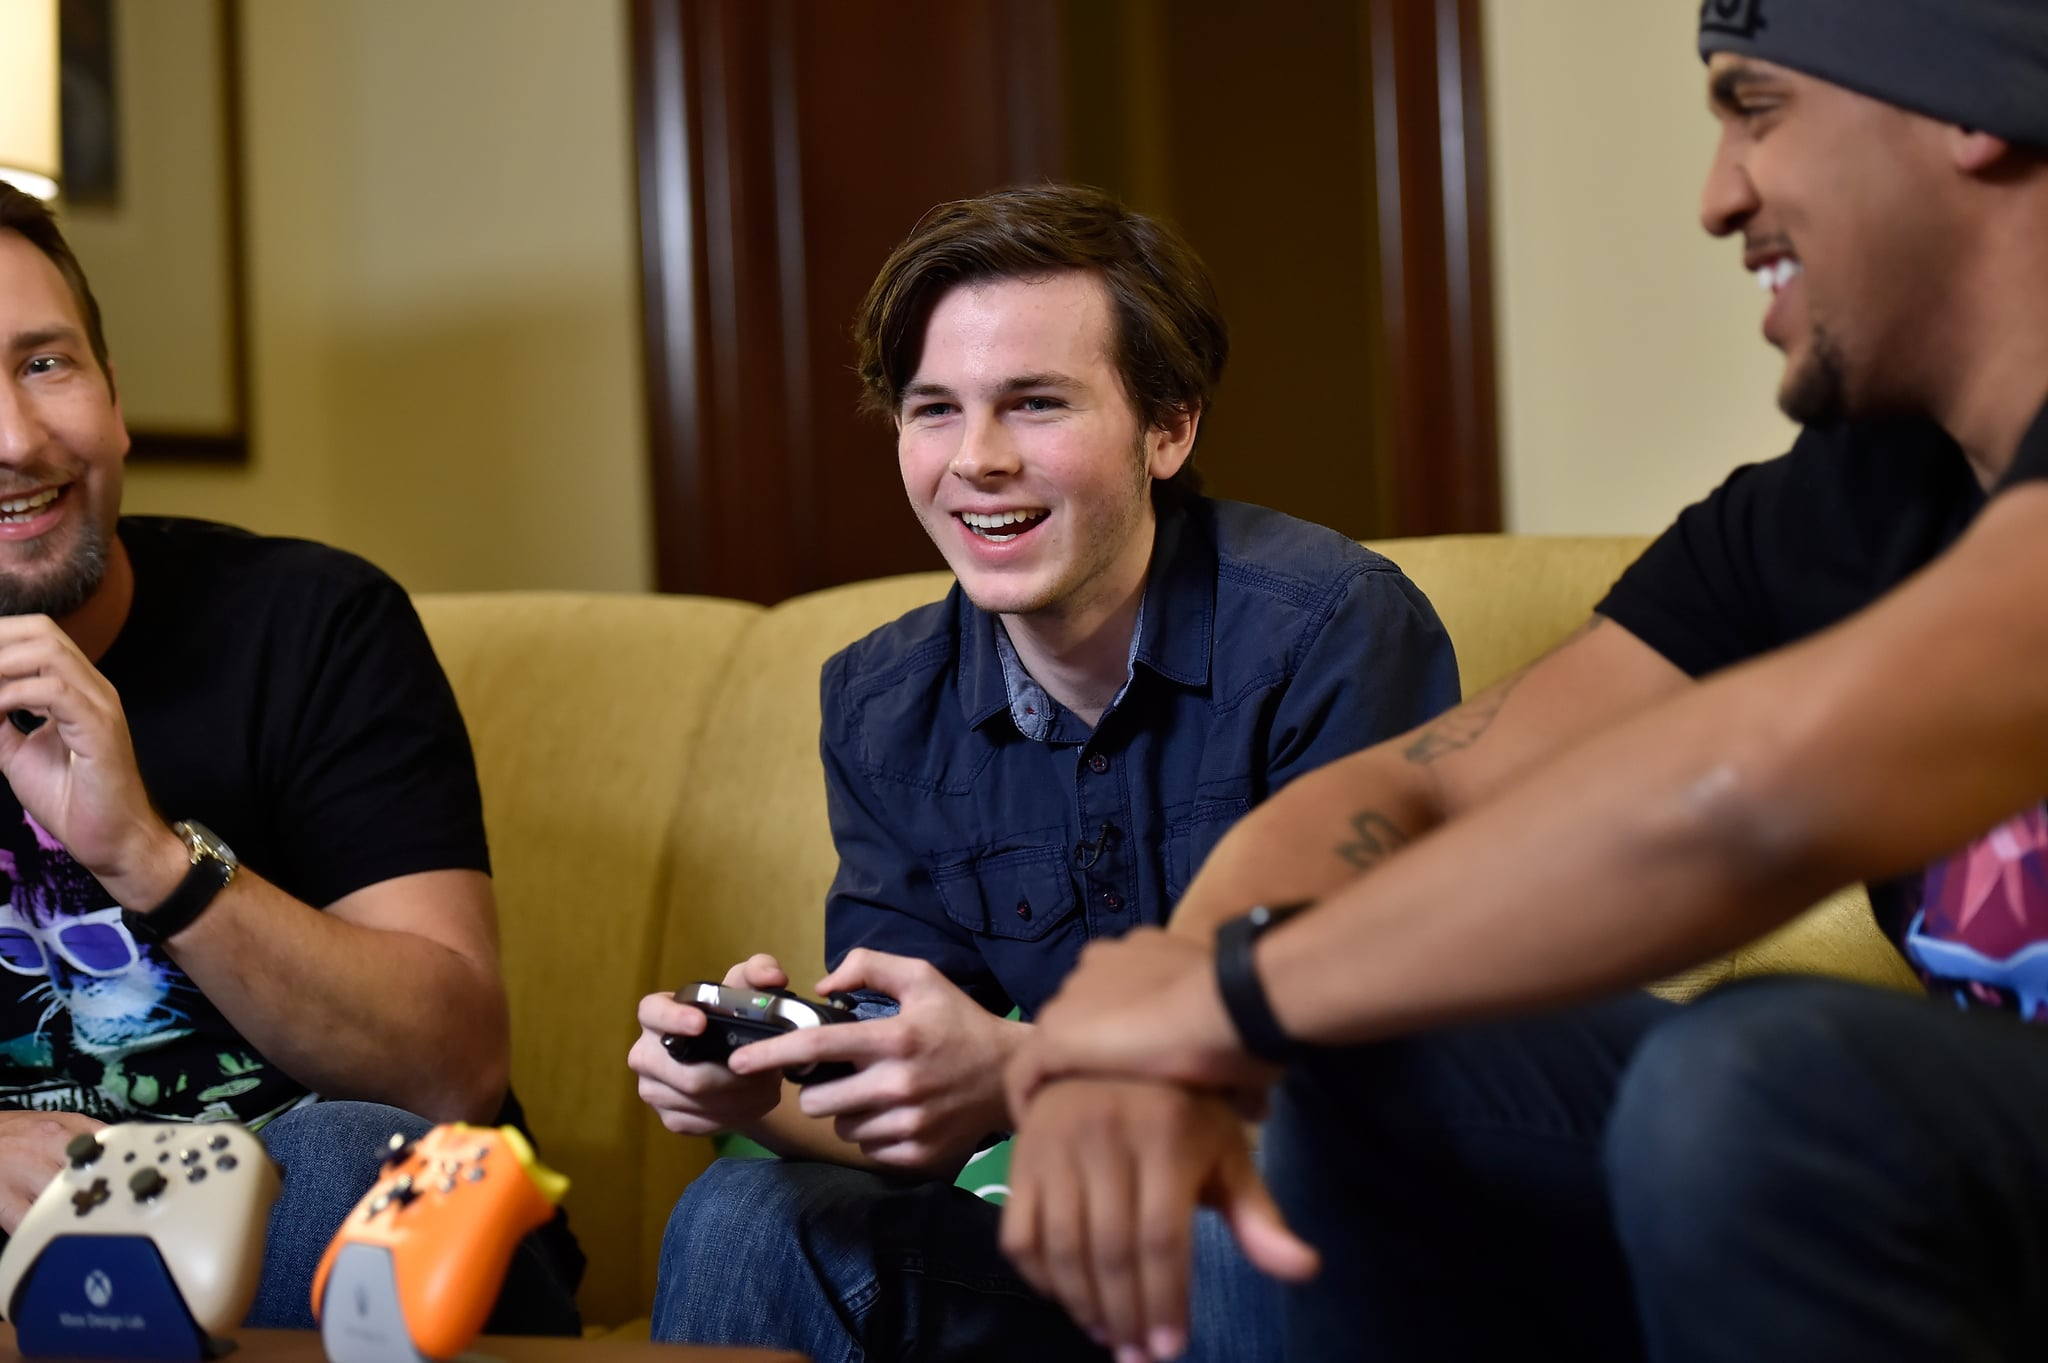 Chandler Riggs Short Haircut February 2018 Popsugar Middle East Celebrity And Entertainment